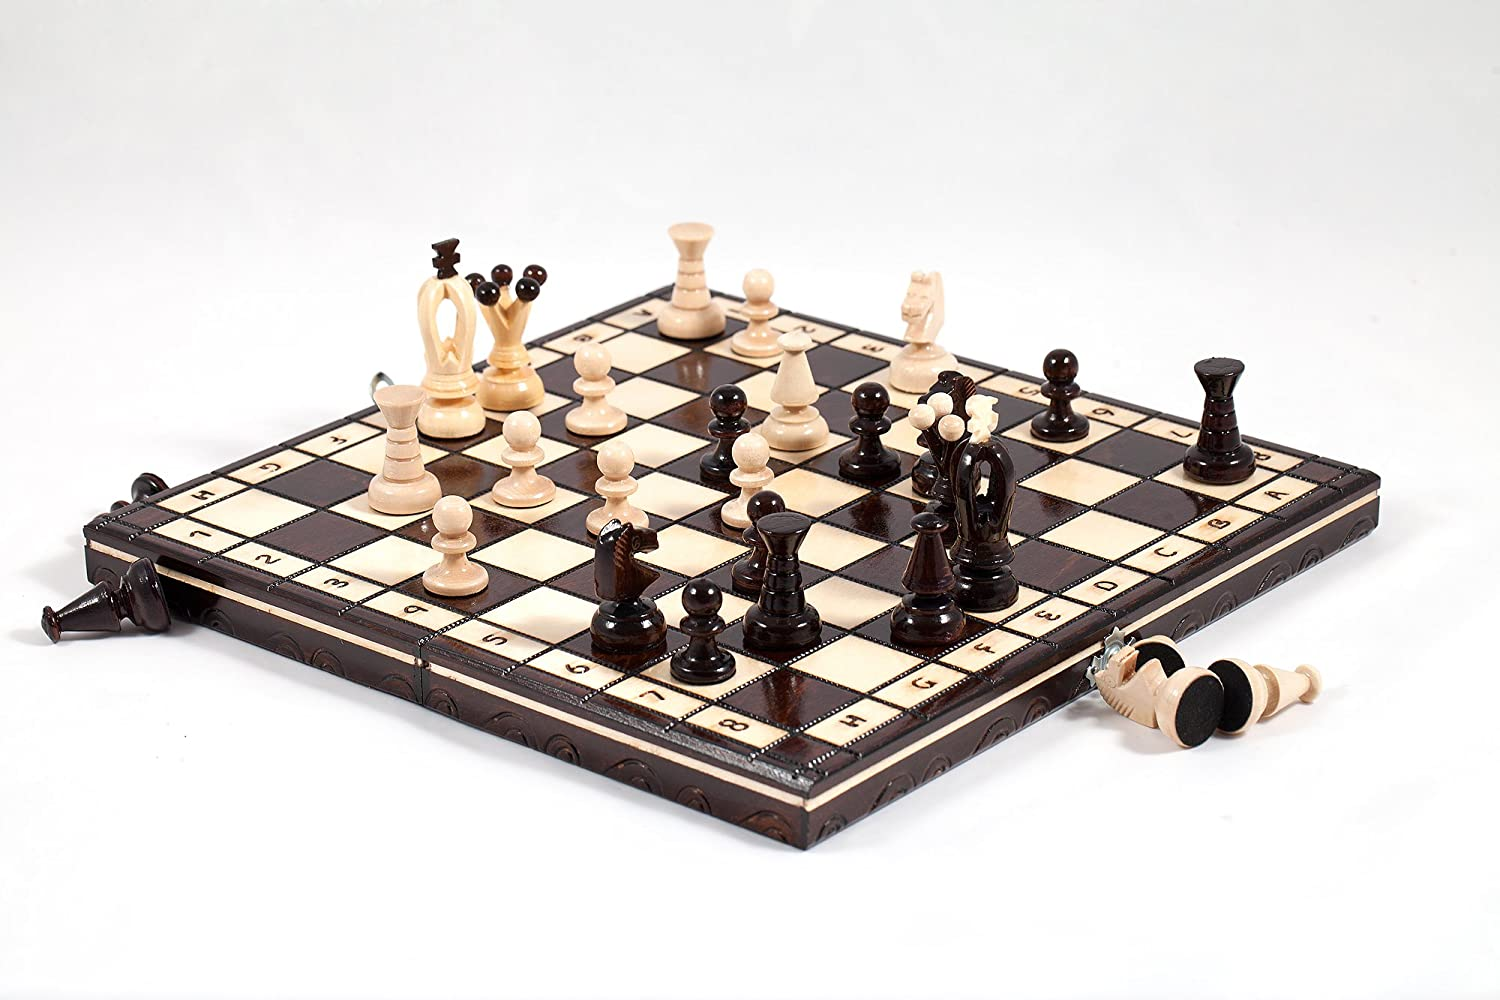 ''THE KINGDOM'' WOODEN CHESS SET - STUNNING HAND CRAFRED 31x31cm Prime Chess